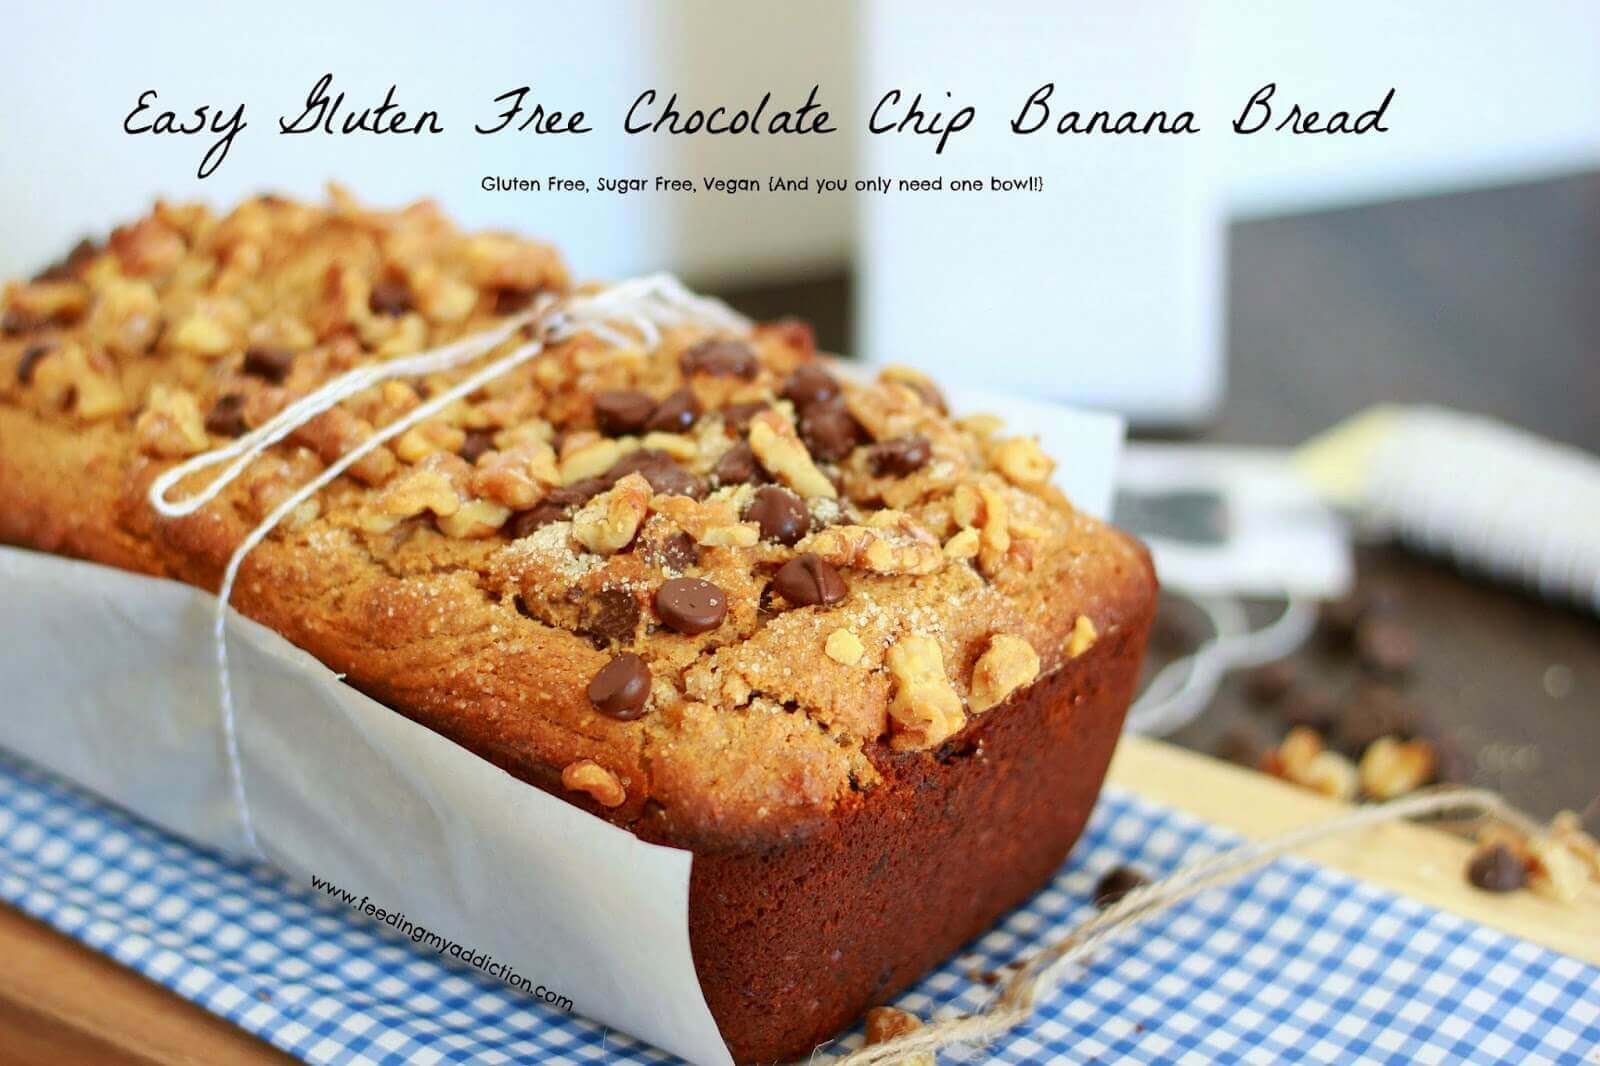 Easy Gluten Free Chocolate Chip Banana Bread